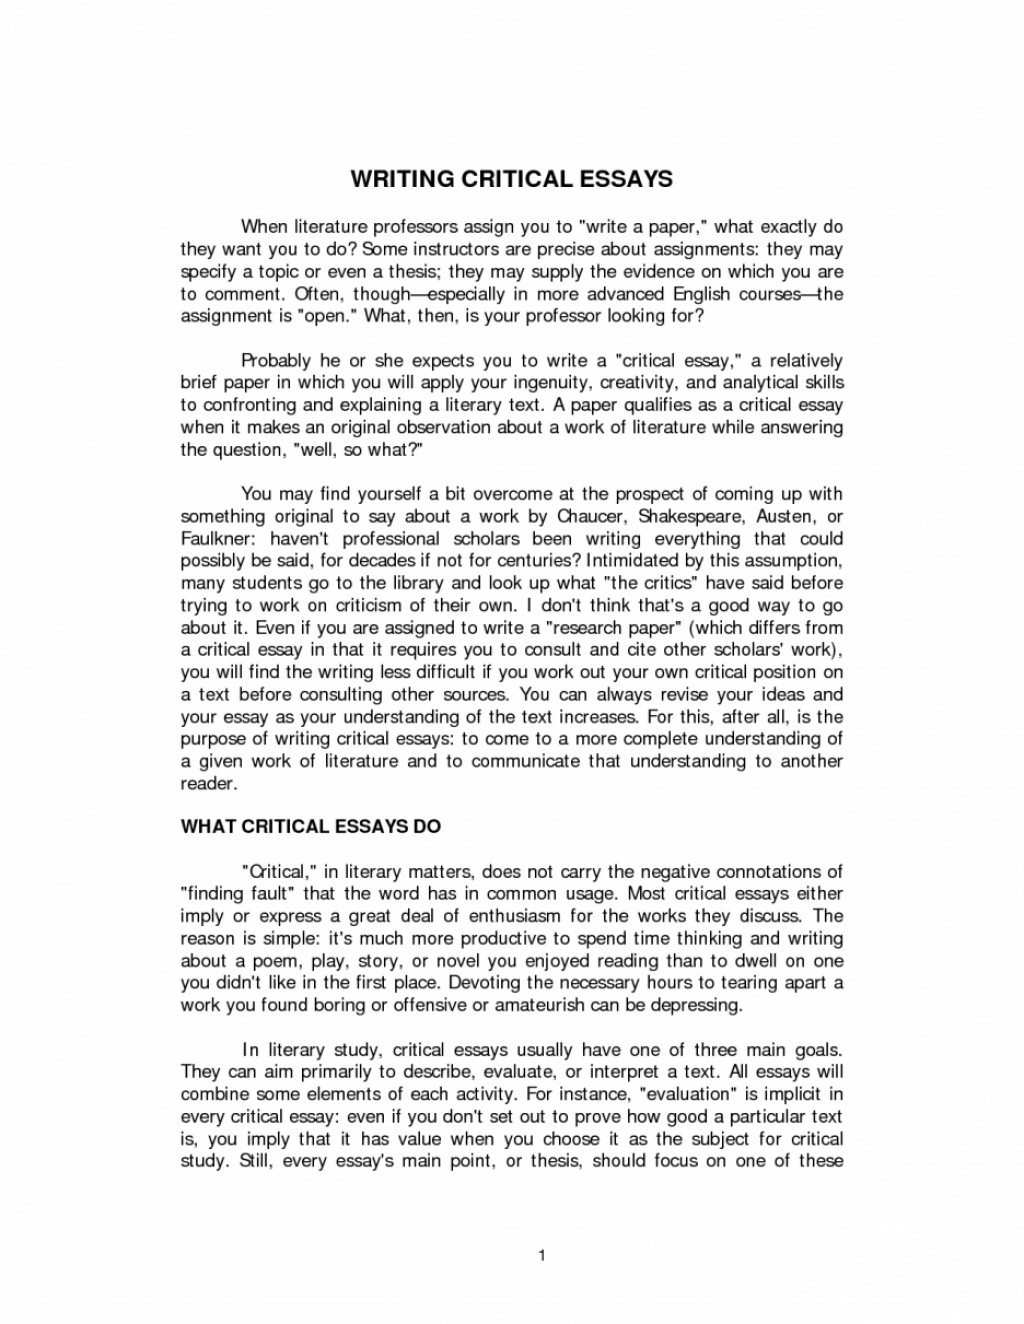 006 Essay Example Help Writing Descriptive Nxcpjzbtuh Examples Of About Place Your Favorite Short Sample In Philippines Awesome A How To Write Person Pdf Large